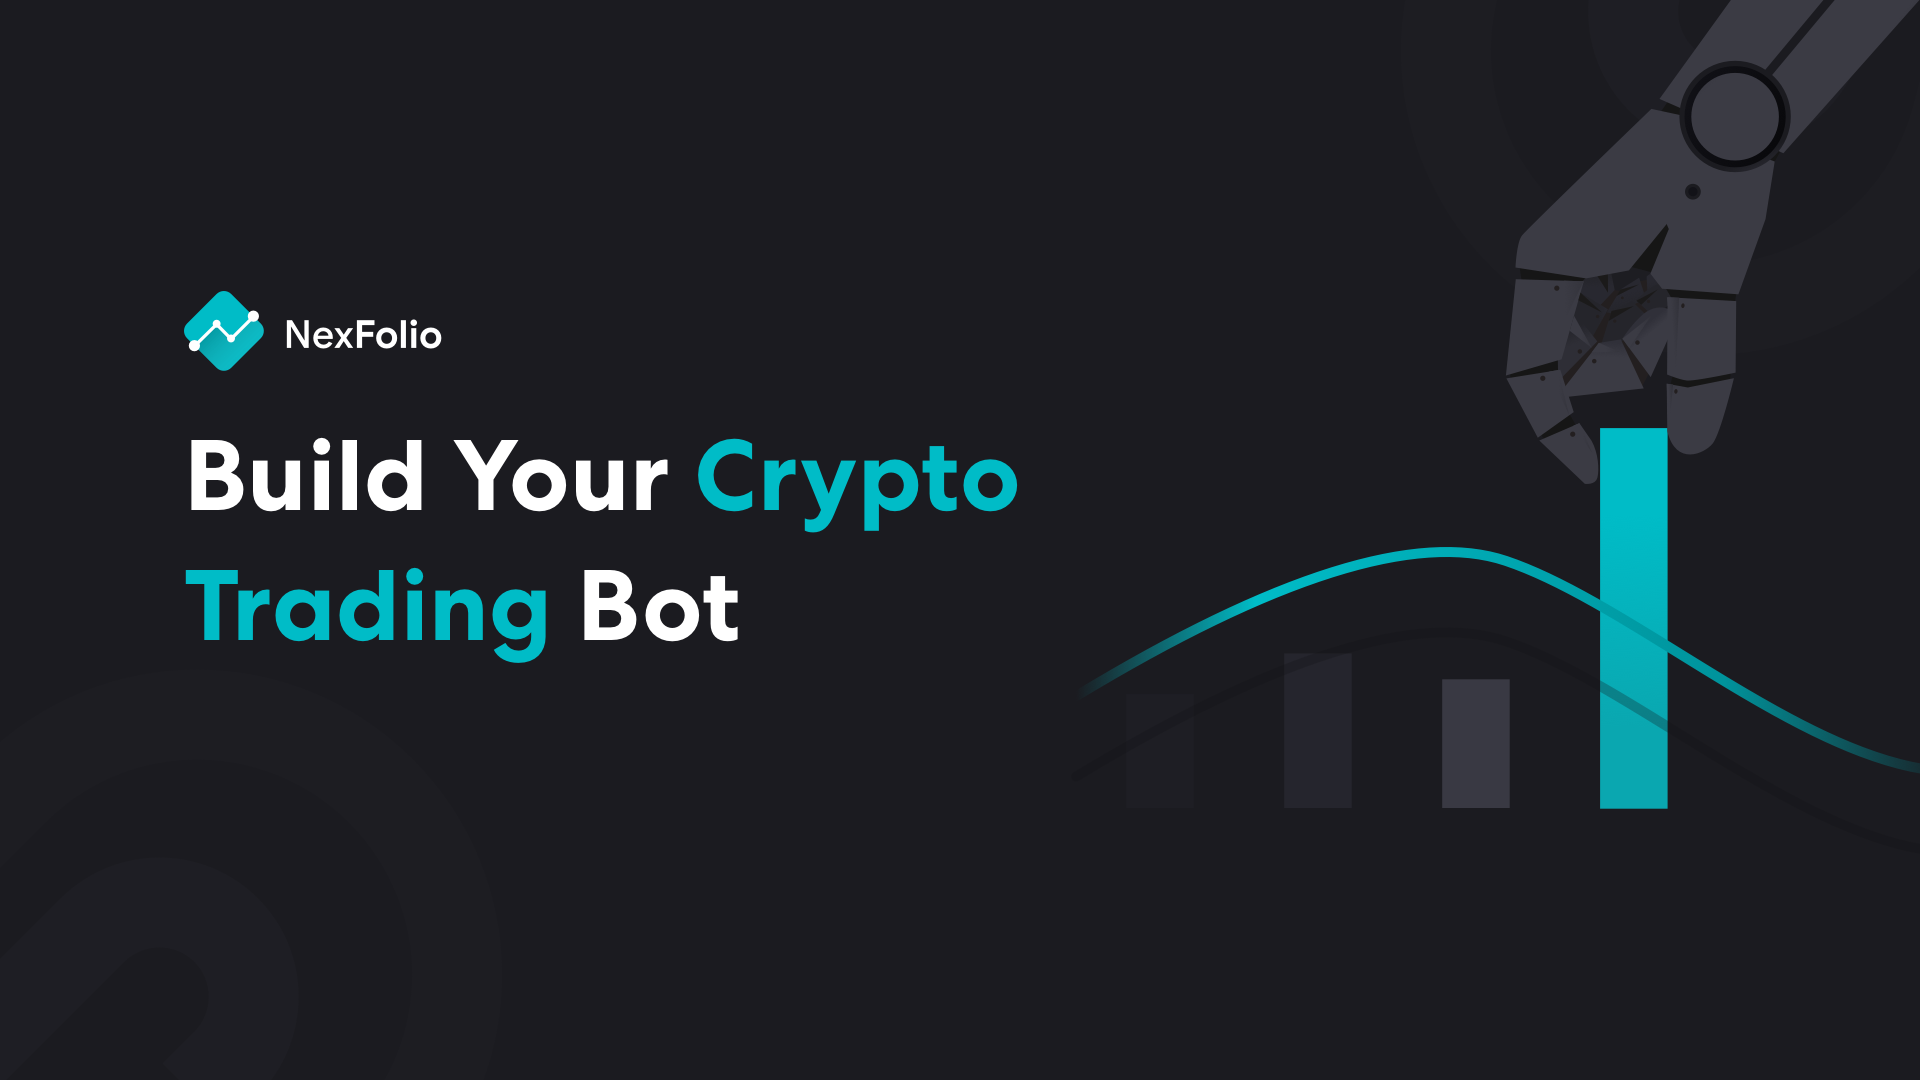 How To Built Your Own Crypto Trading Bots 2020